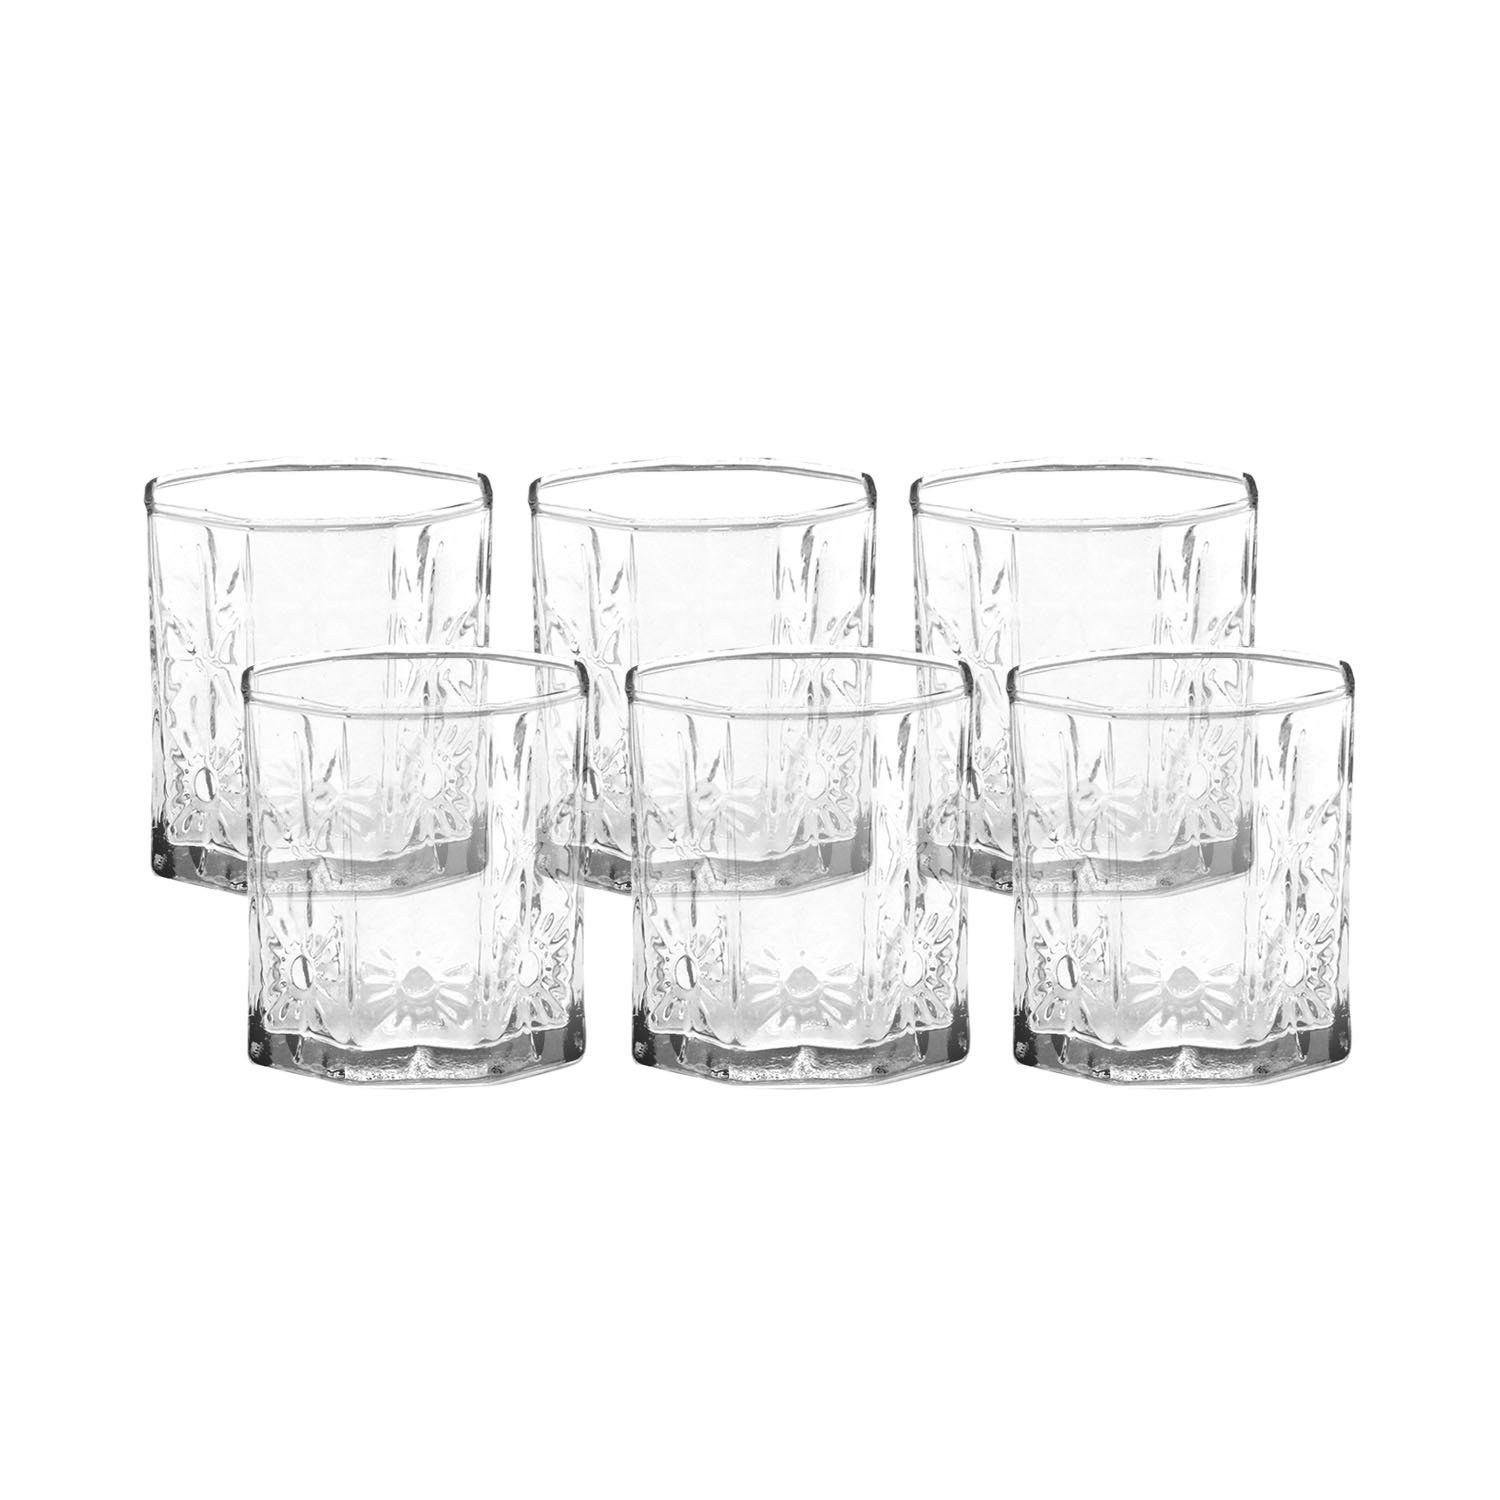 Home Pride Crystal Glass Set 6pcs D